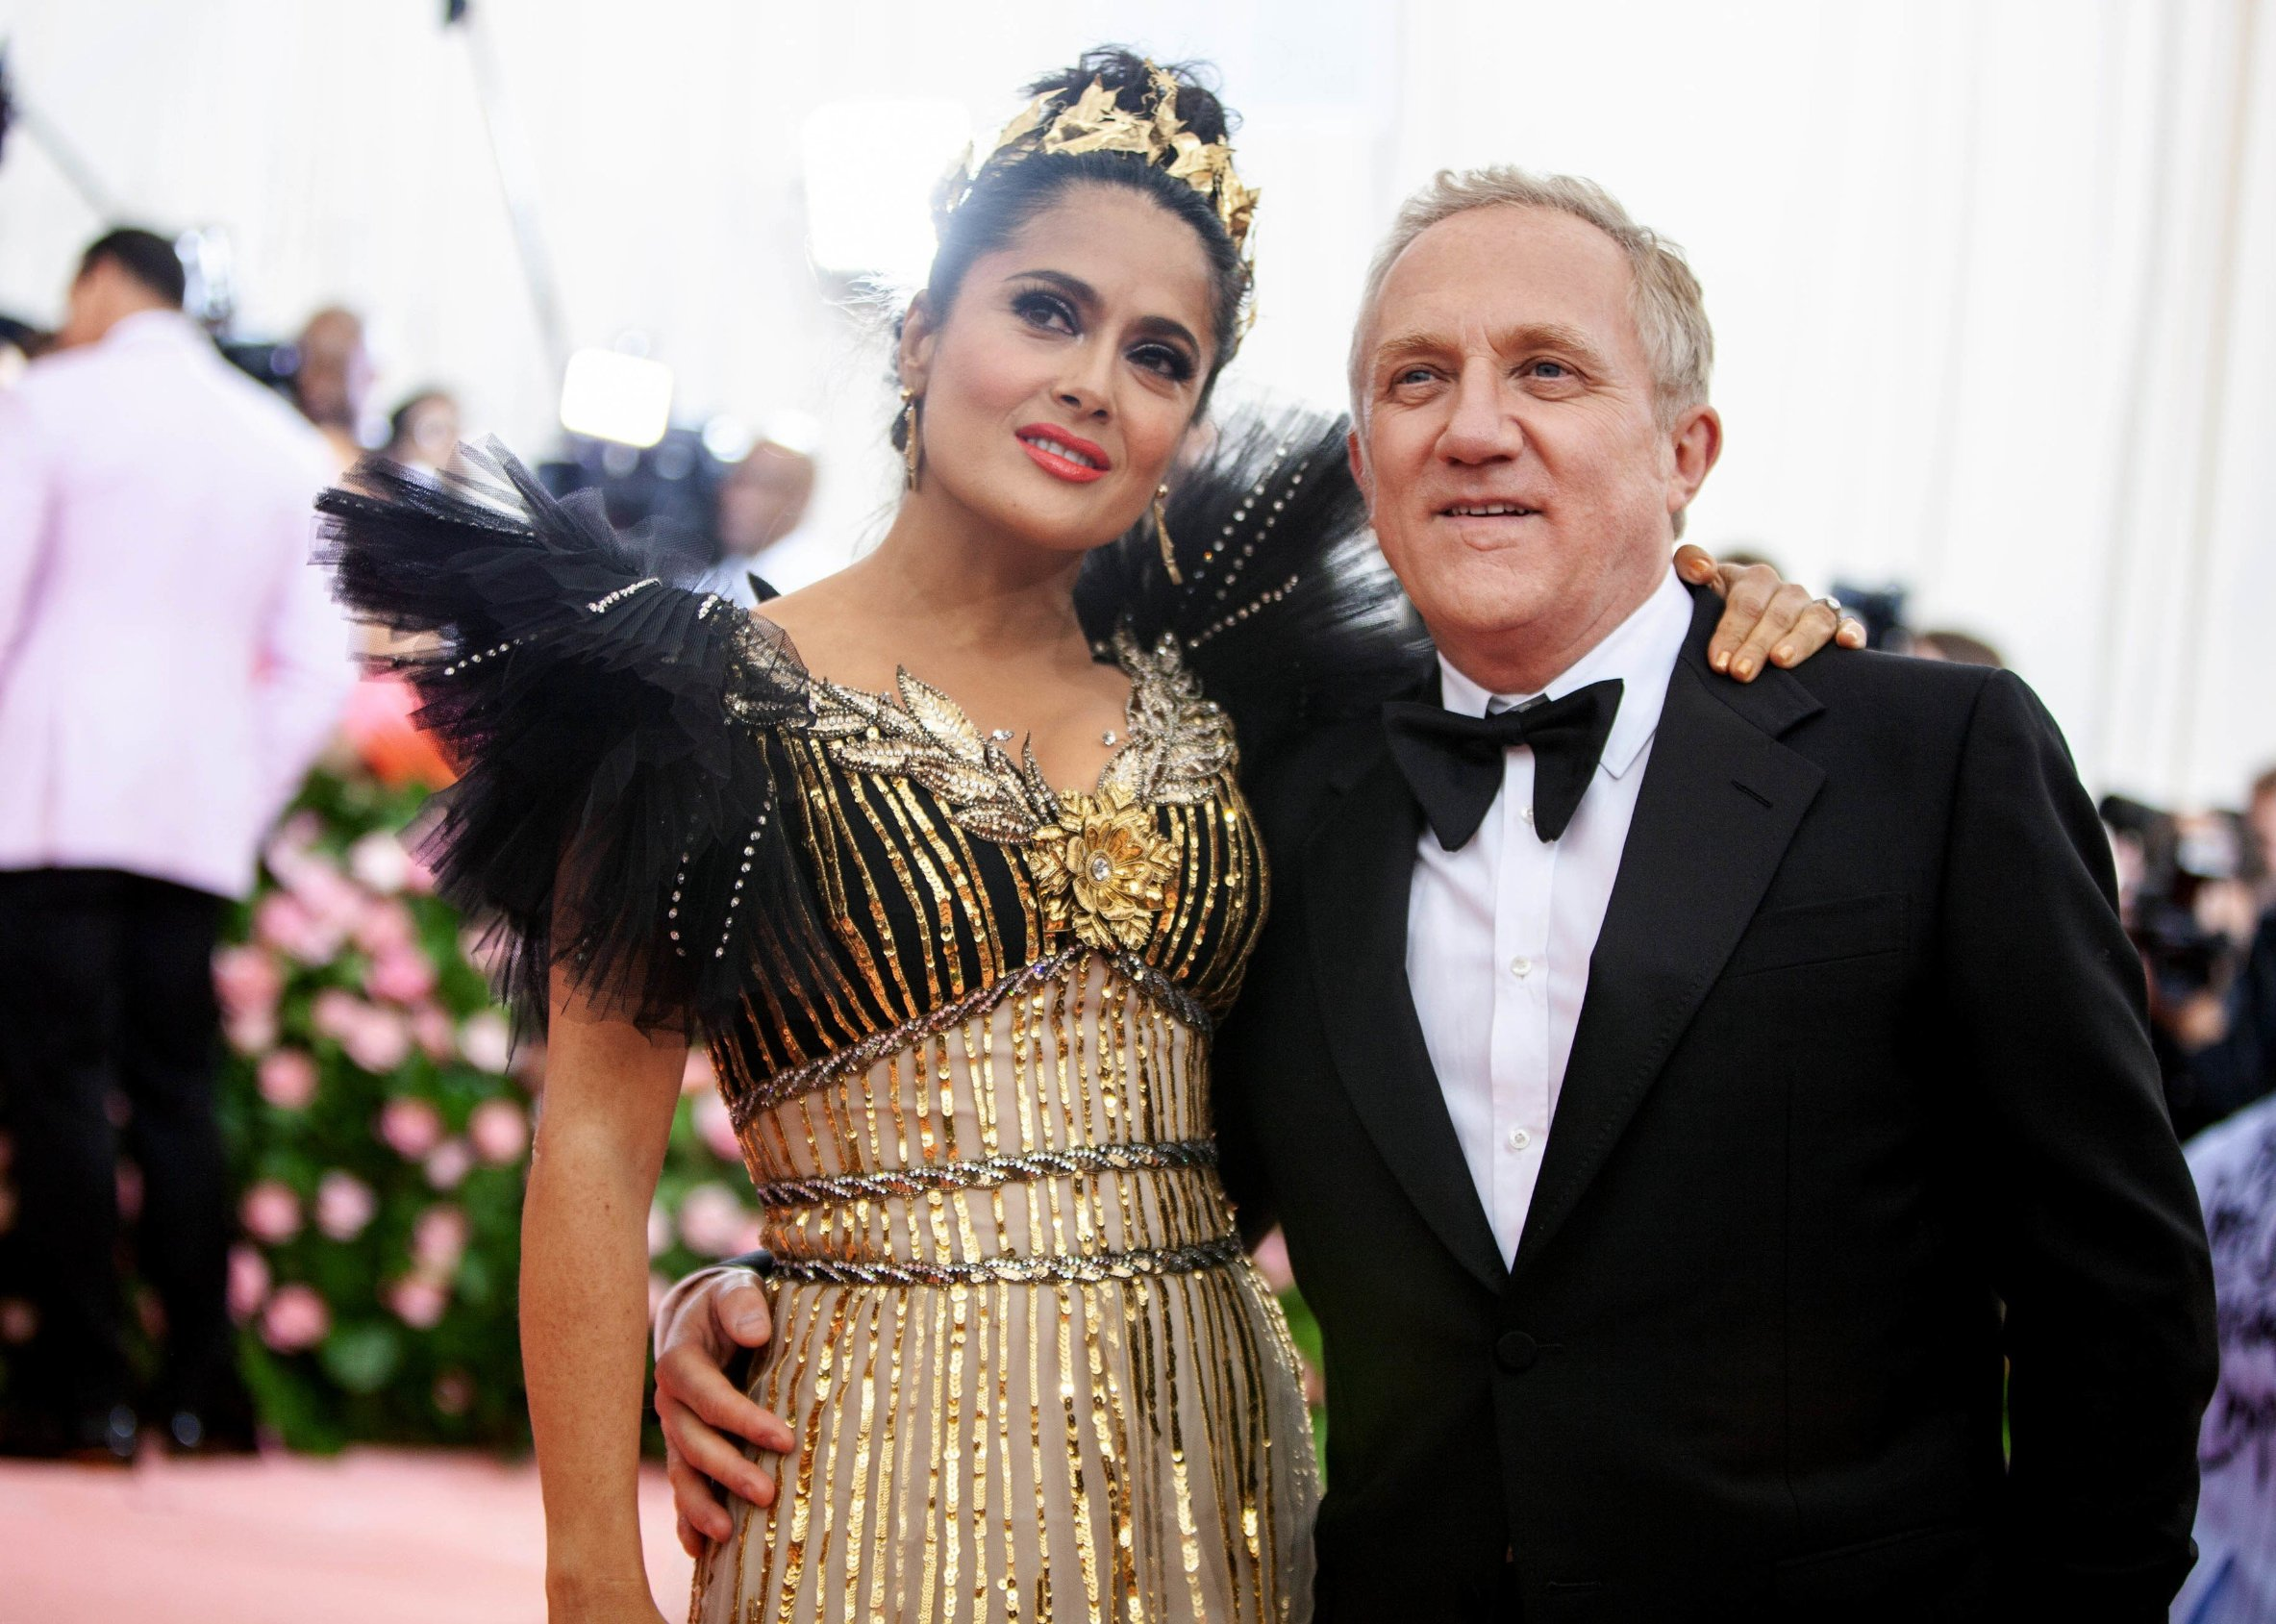 Salma Hayek and Francois-Henri Pinault Costume Institute Benefit celebrating the opening of Camp: Notes on Fashion, Arrivals, The Metropolitan Museum of Art, New York, USA - 06 May 2019, Image: 431328955, License: Rights-managed, Restrictions: , Model Release: no, Credit line: Profimedia, TEMP Rex Features